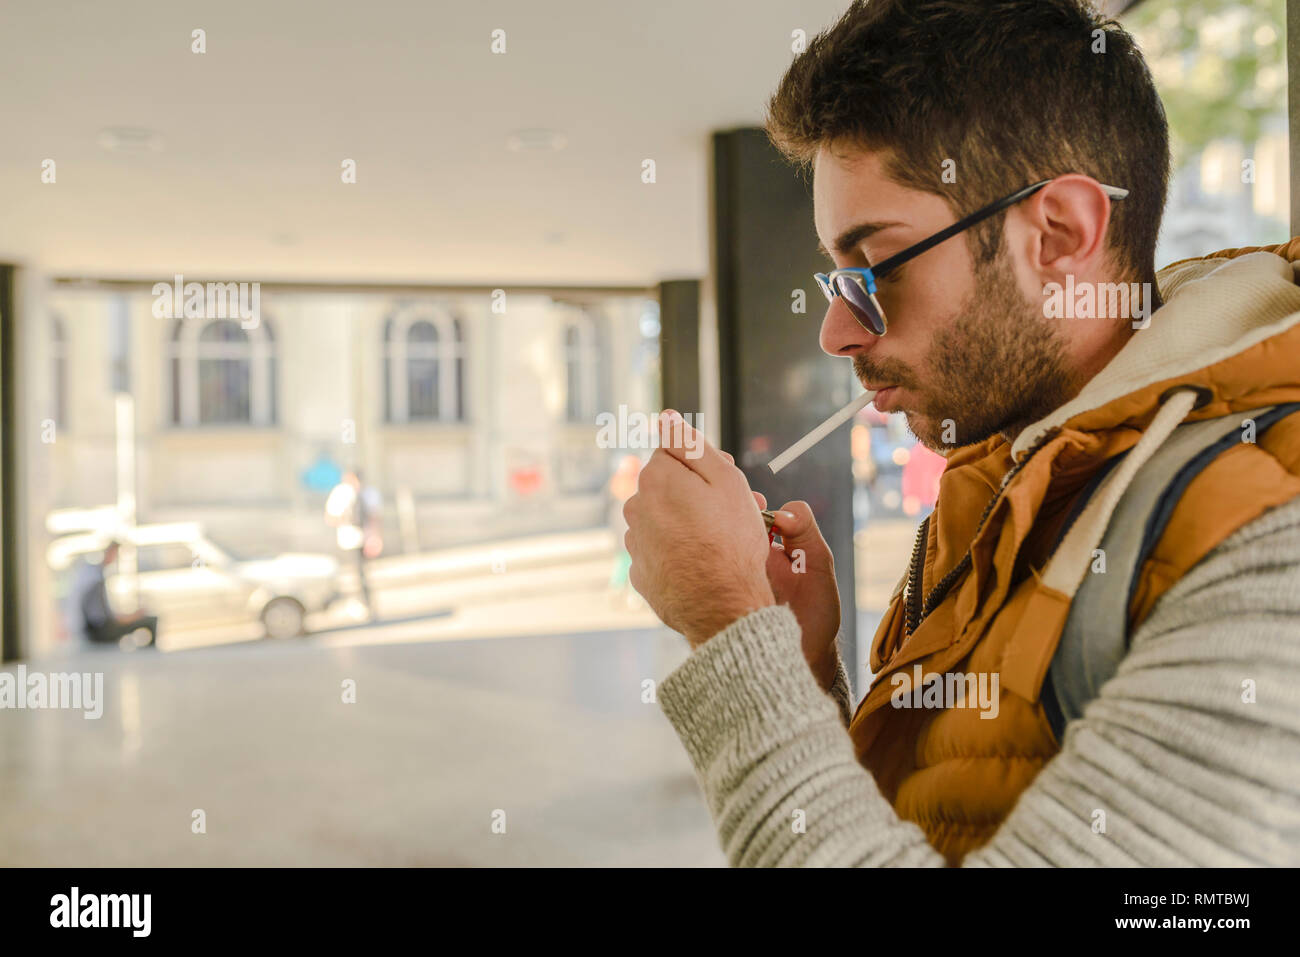 Young handsome hipster with orange jacket and sunglasses enjoying a cigarette in the street. - Stock Image